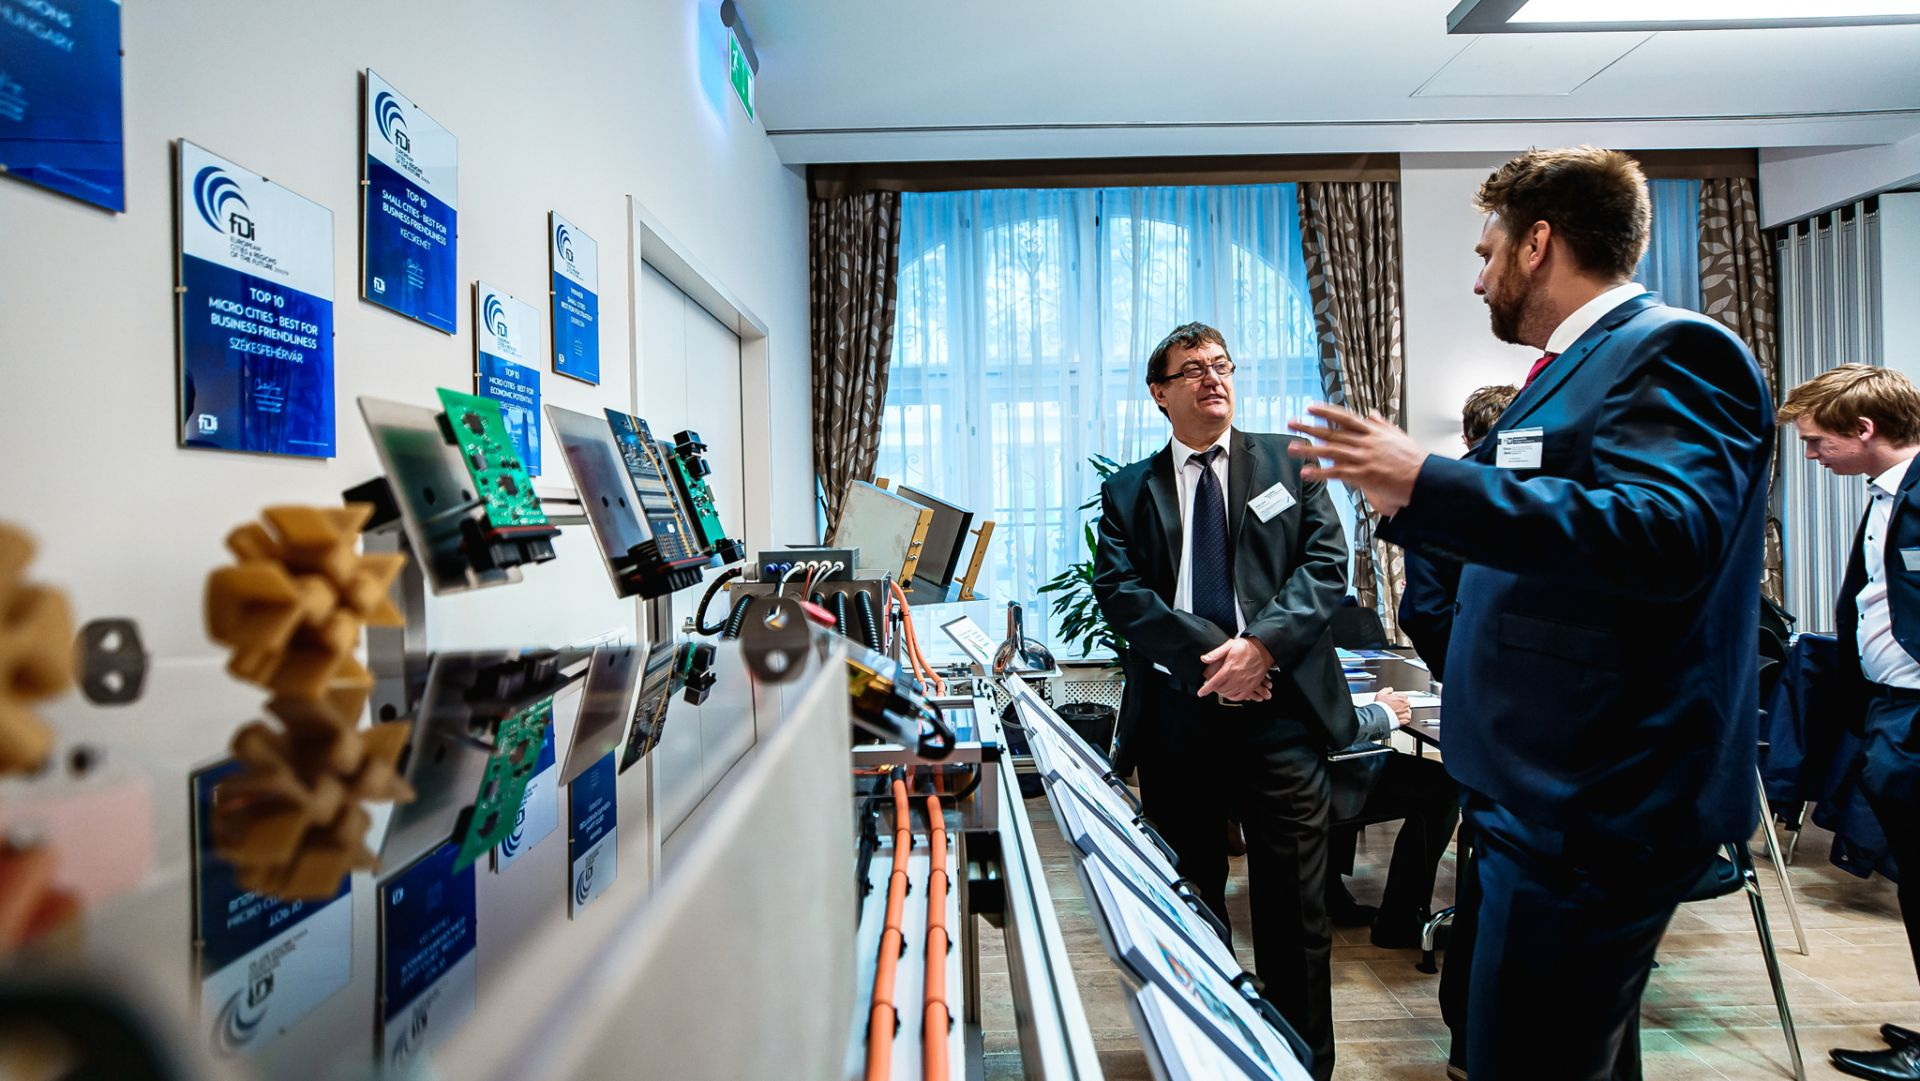 Substantial opportunities are awaiting Hungarian suppliers in the field of e-mobility as well